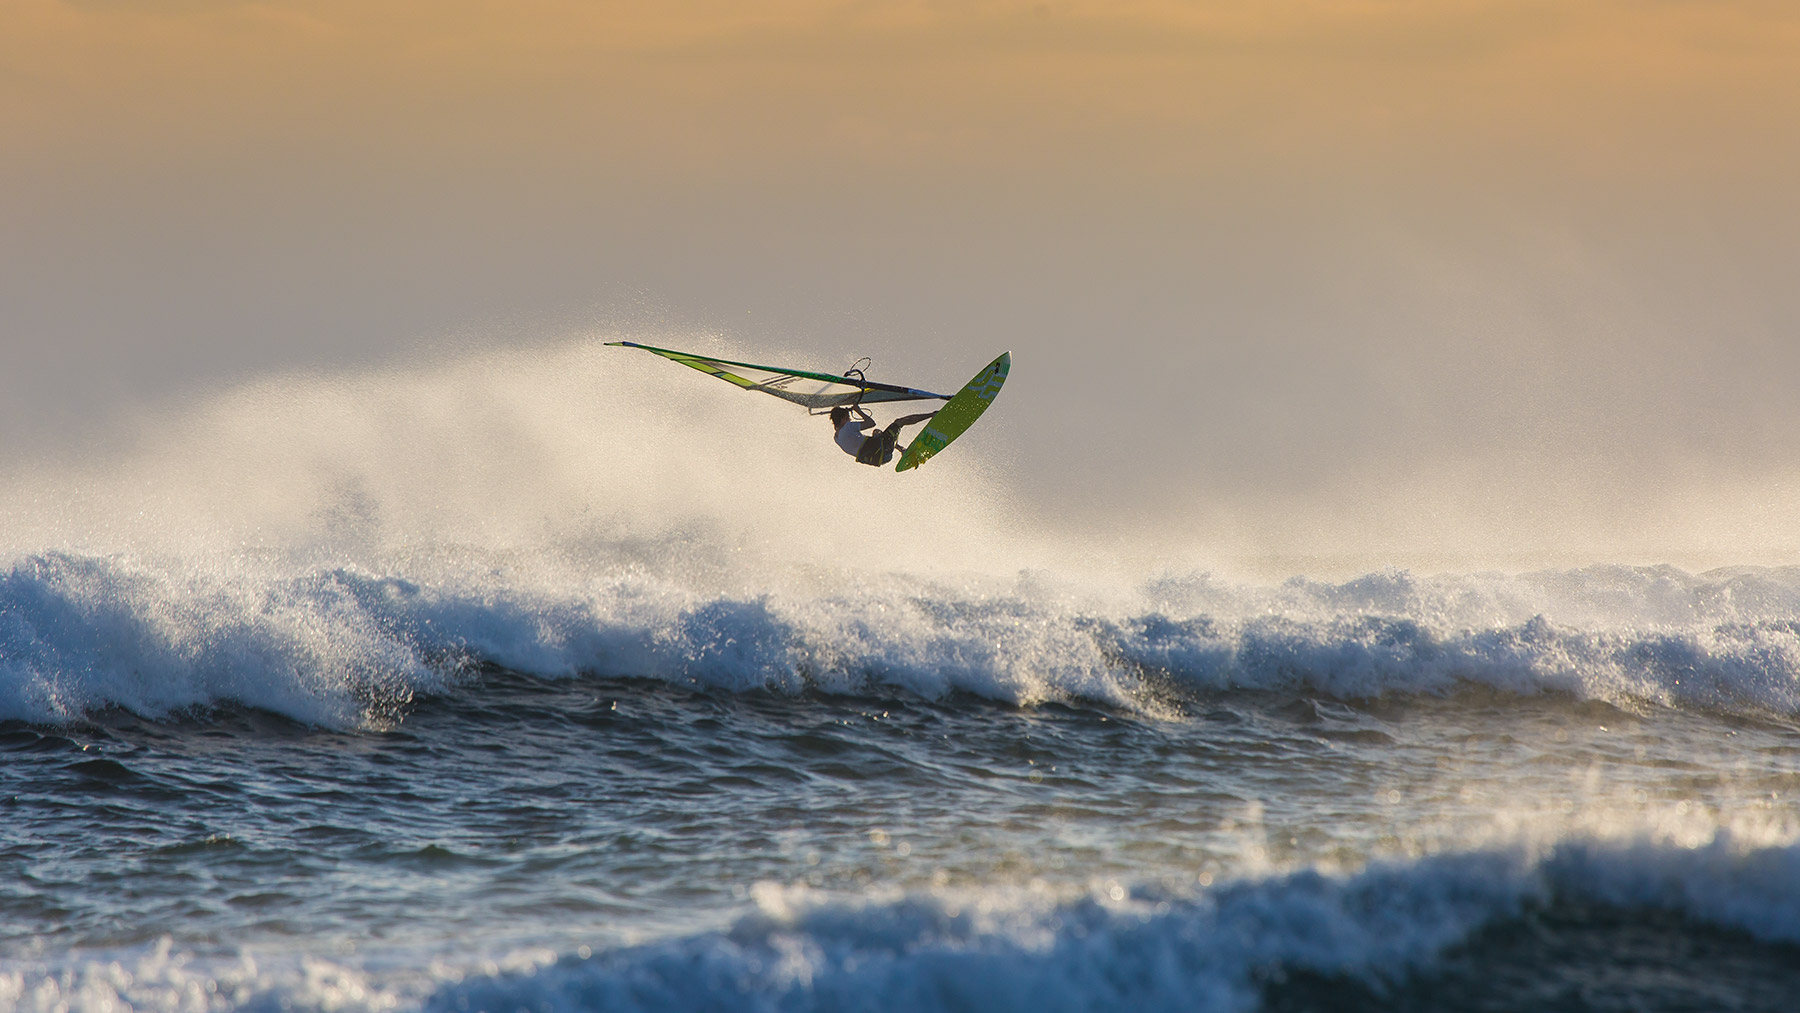 windsurfing aerial at sunset